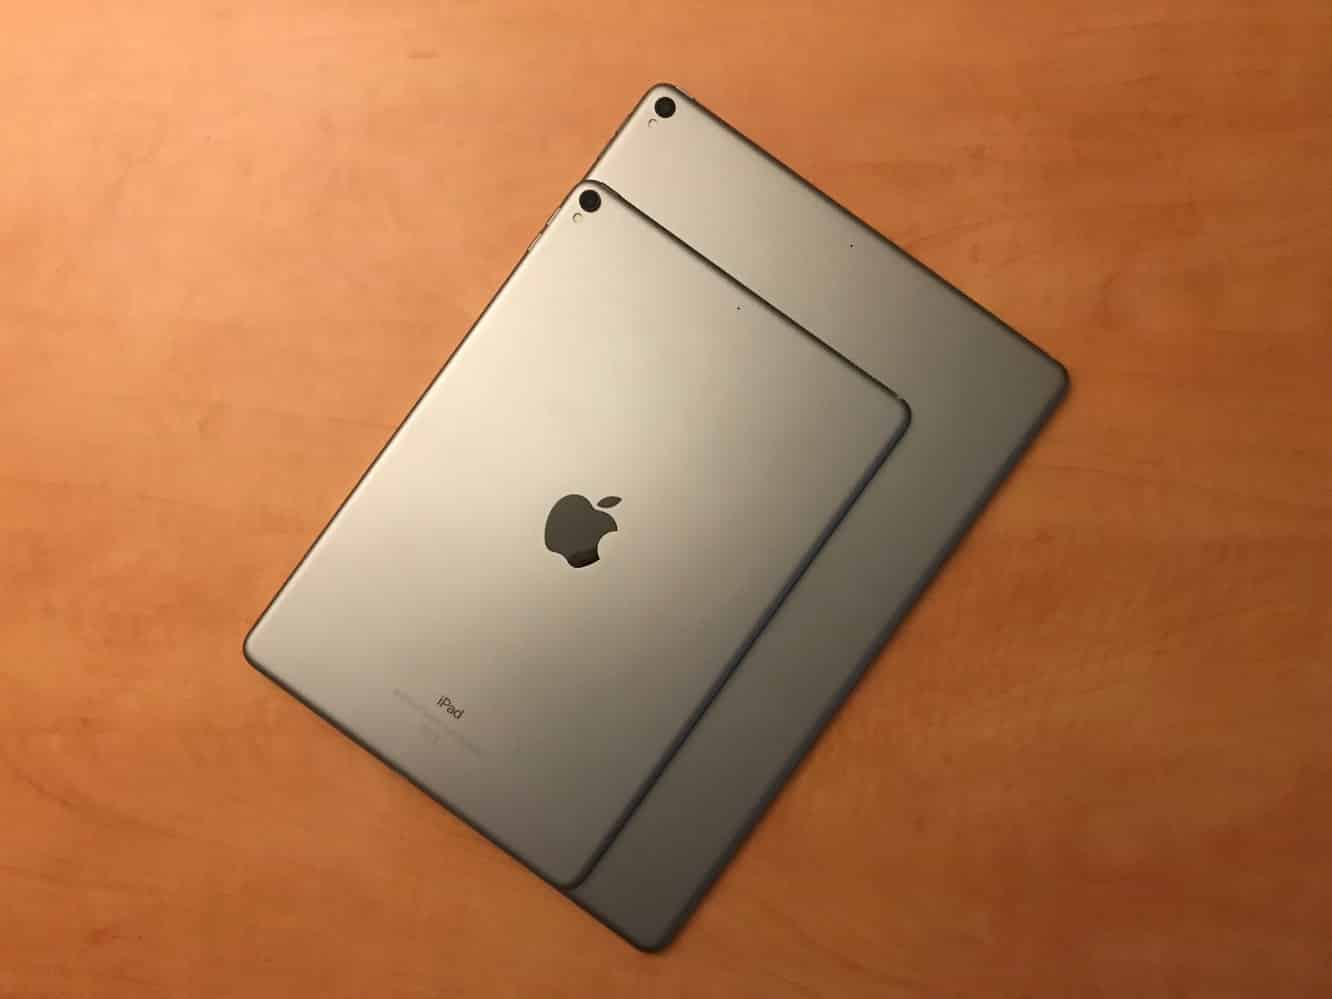 Review: Apple 12.9-inch iPad Pro (Second Generation), 10.5-inch iPad Pro